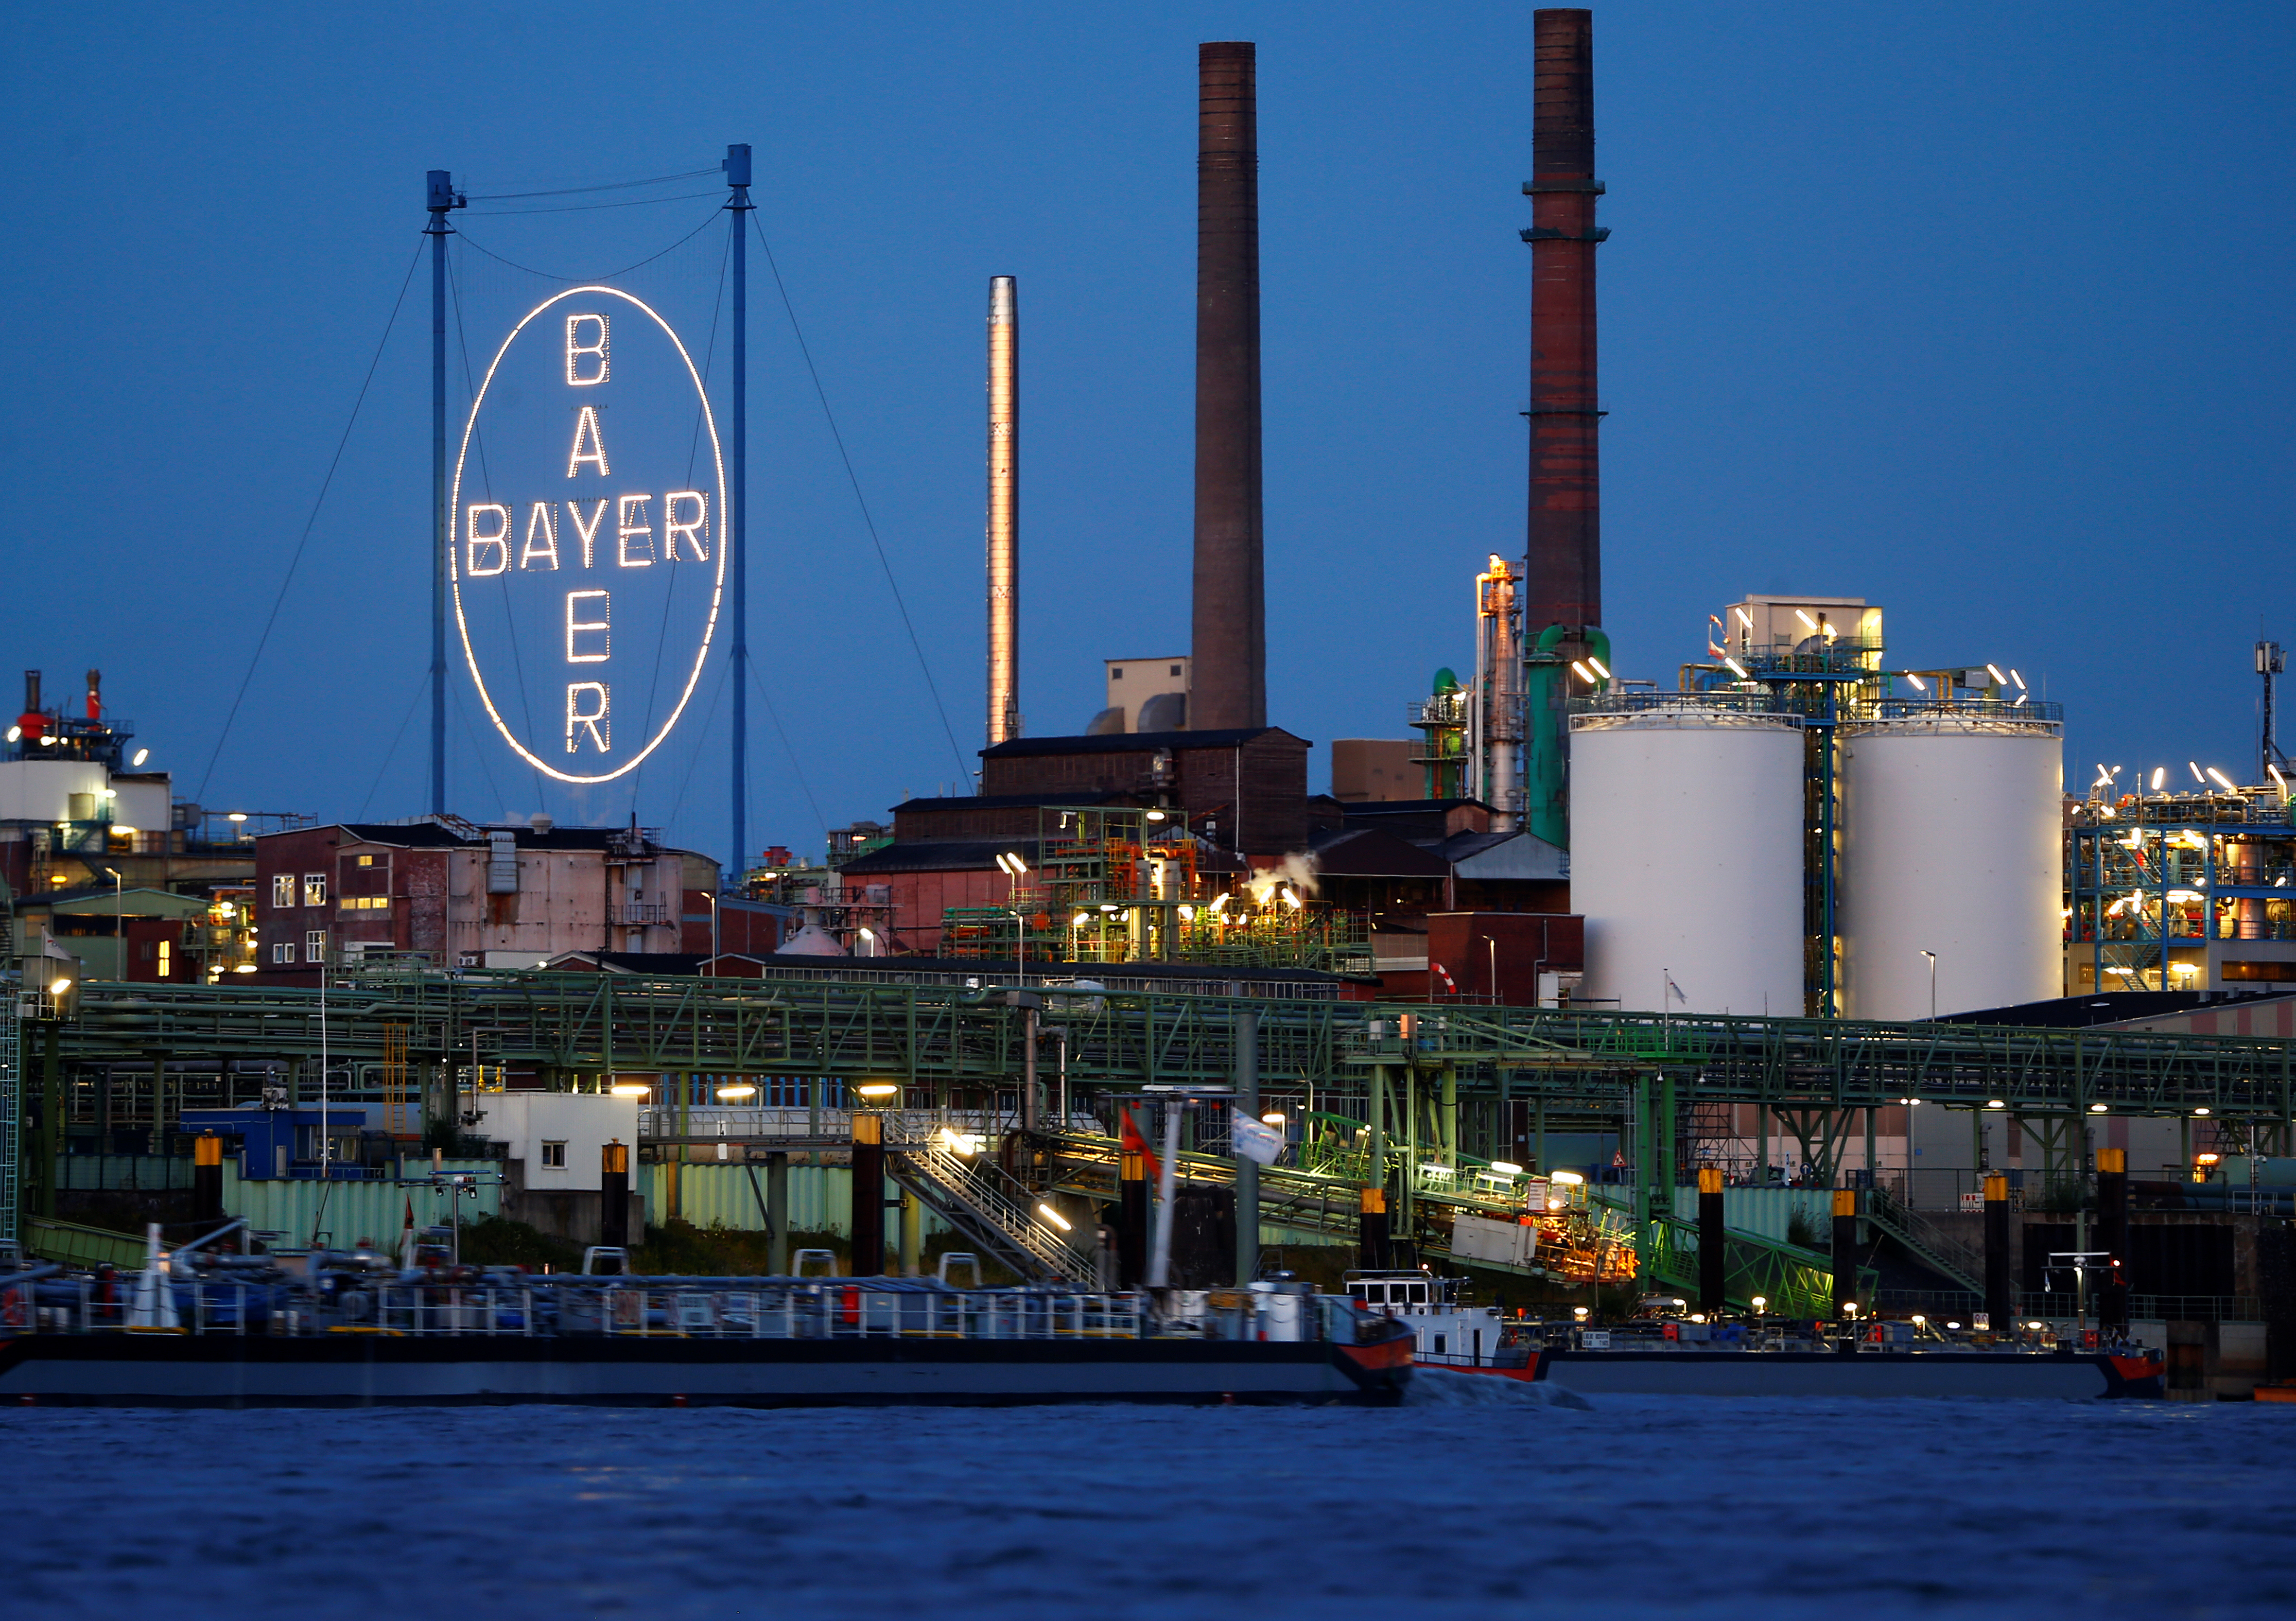 The so-called 'Chempark', the main plant and headquarters of German pharmaceutical and chemical maker Bayer AG is pictured along the river Rhine in Leverkusen, Germany, July 3, 2019. REUTERS/Thilo Schmuelgen